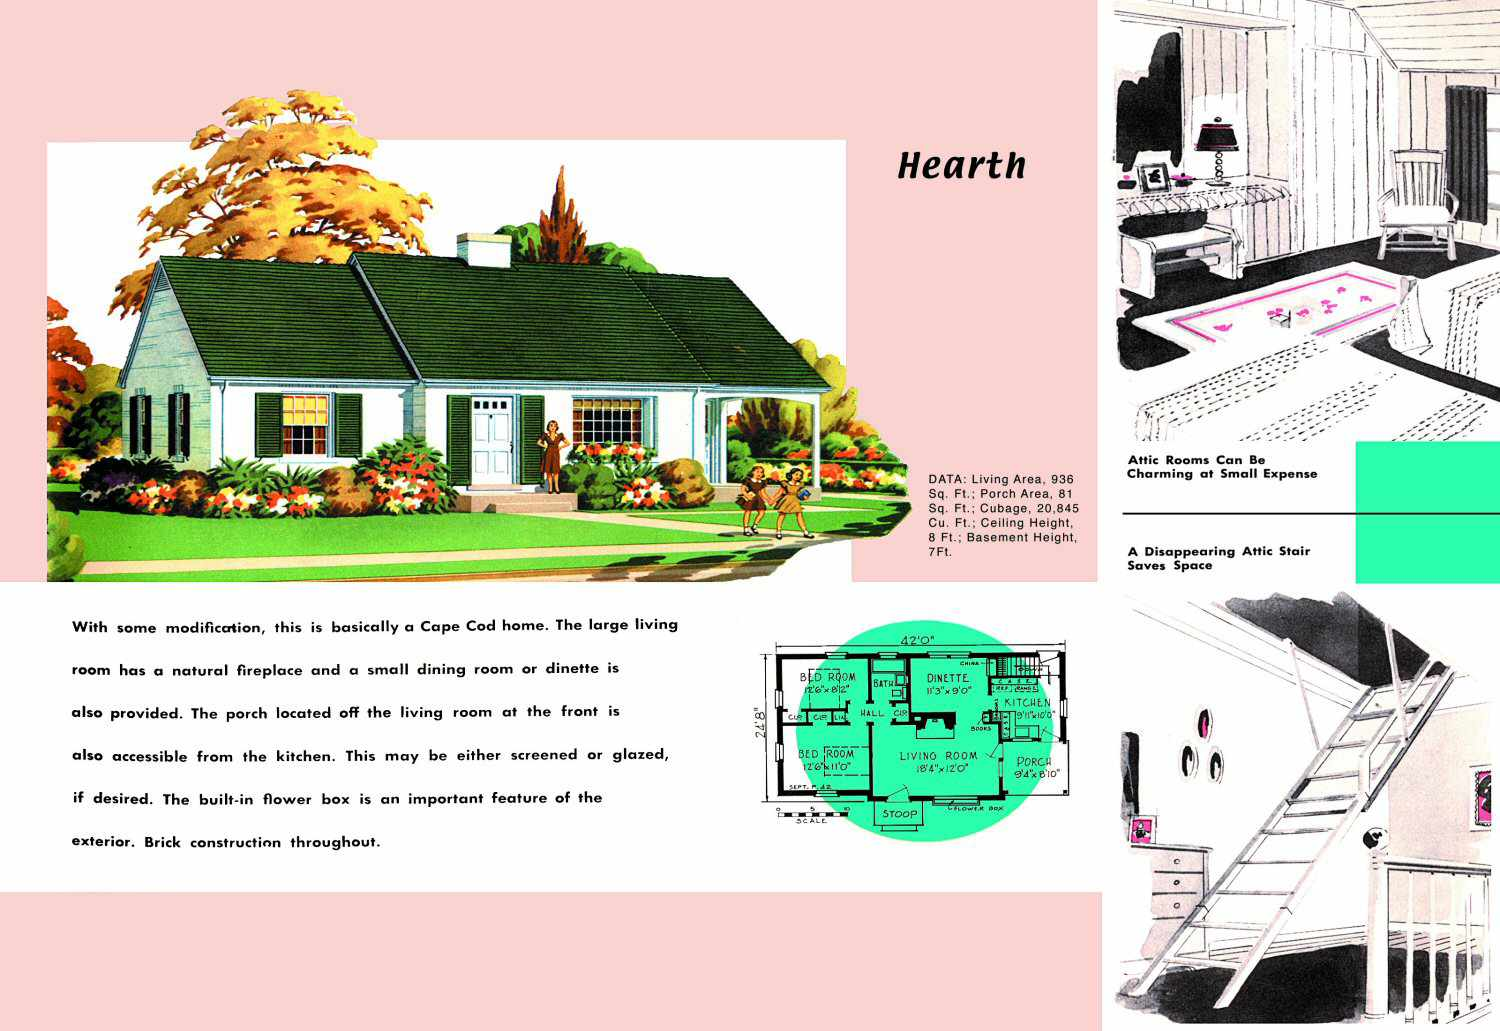 Cape Cod House Plans for 1950s America  Cape Cod House Plans on l shaped ranch house plans, original levittown house floor plans, 1945 house plans, cape cod cottage plans,